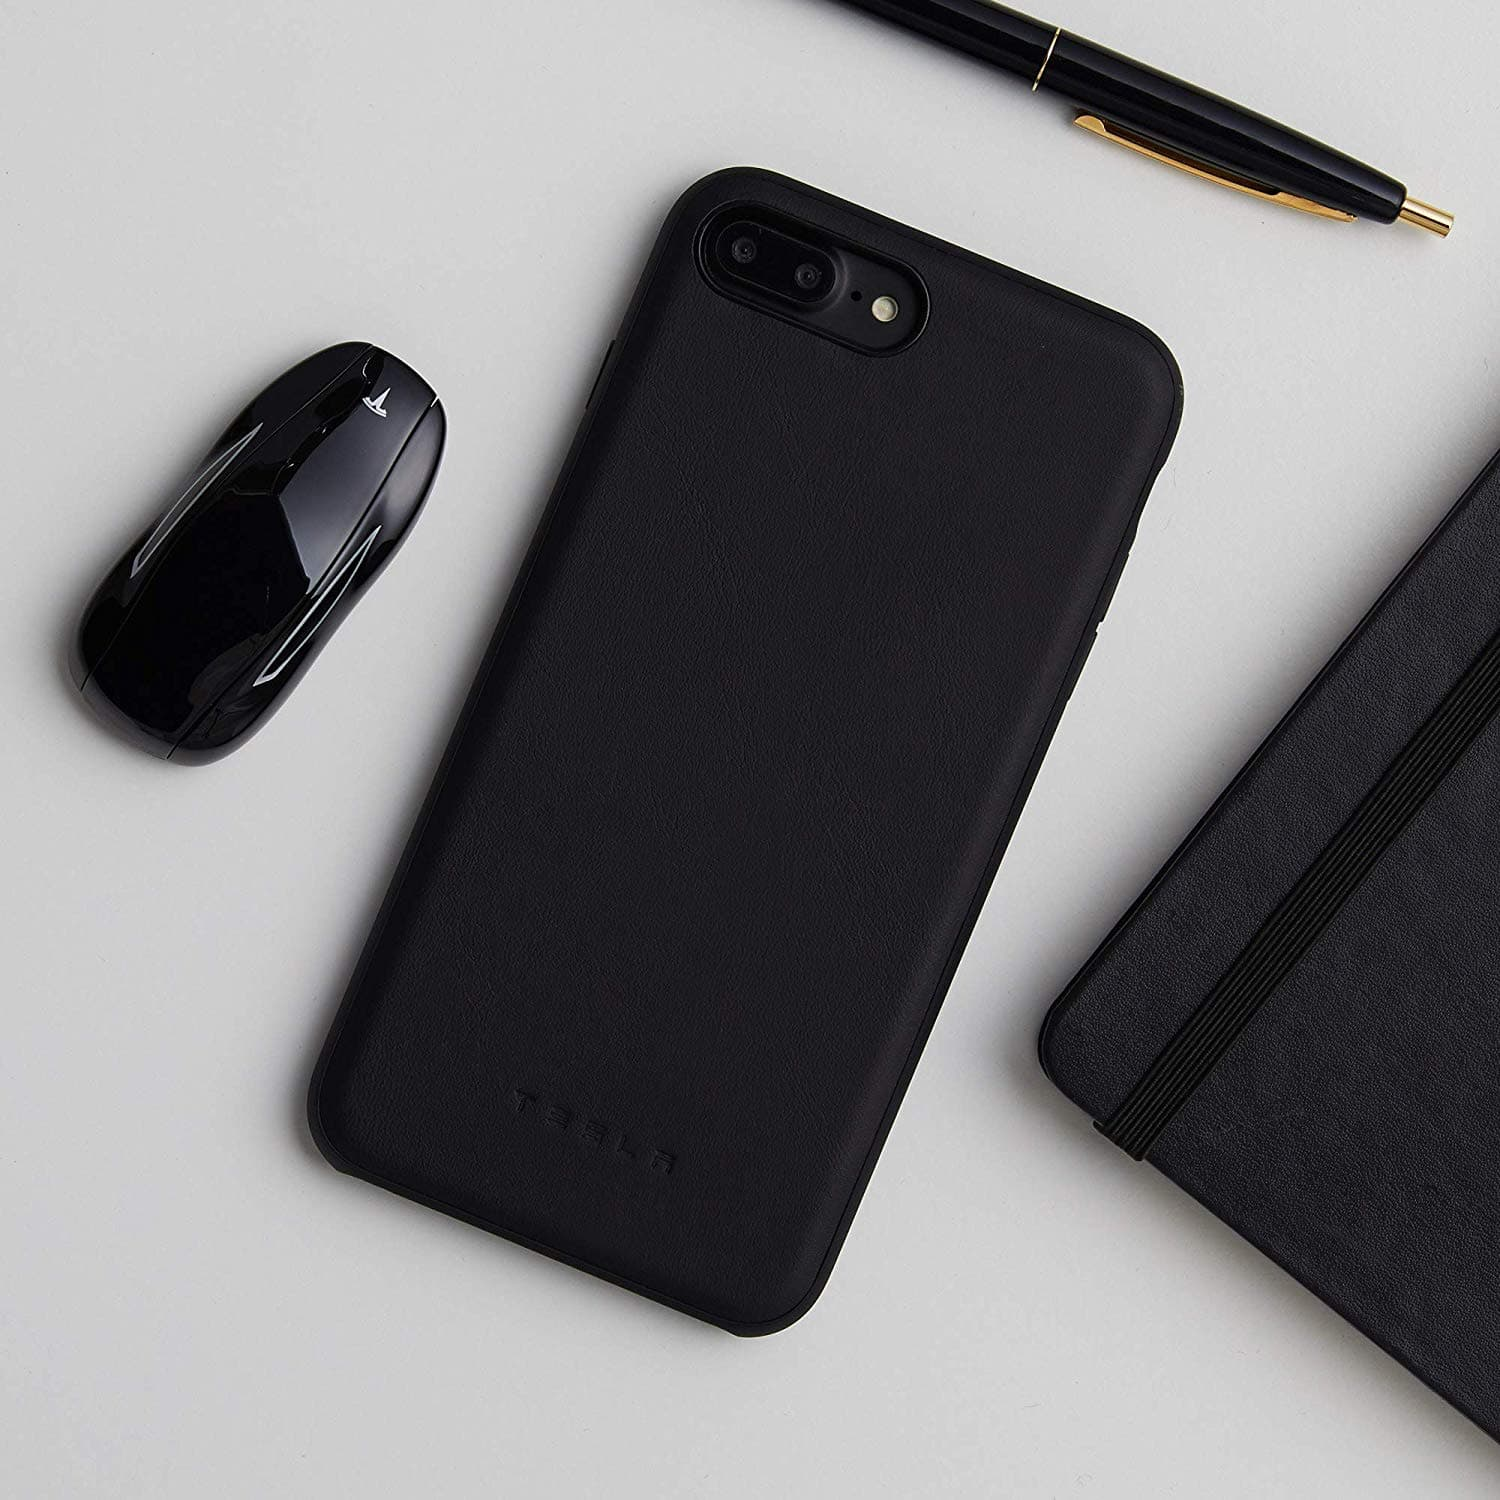 43bfc7f5f5aee9 Tesla has opened up a new Amazon storefront to sell iPhone cases and other  merchandise. First spotted by 9to5Mac, the store features everything from  ...